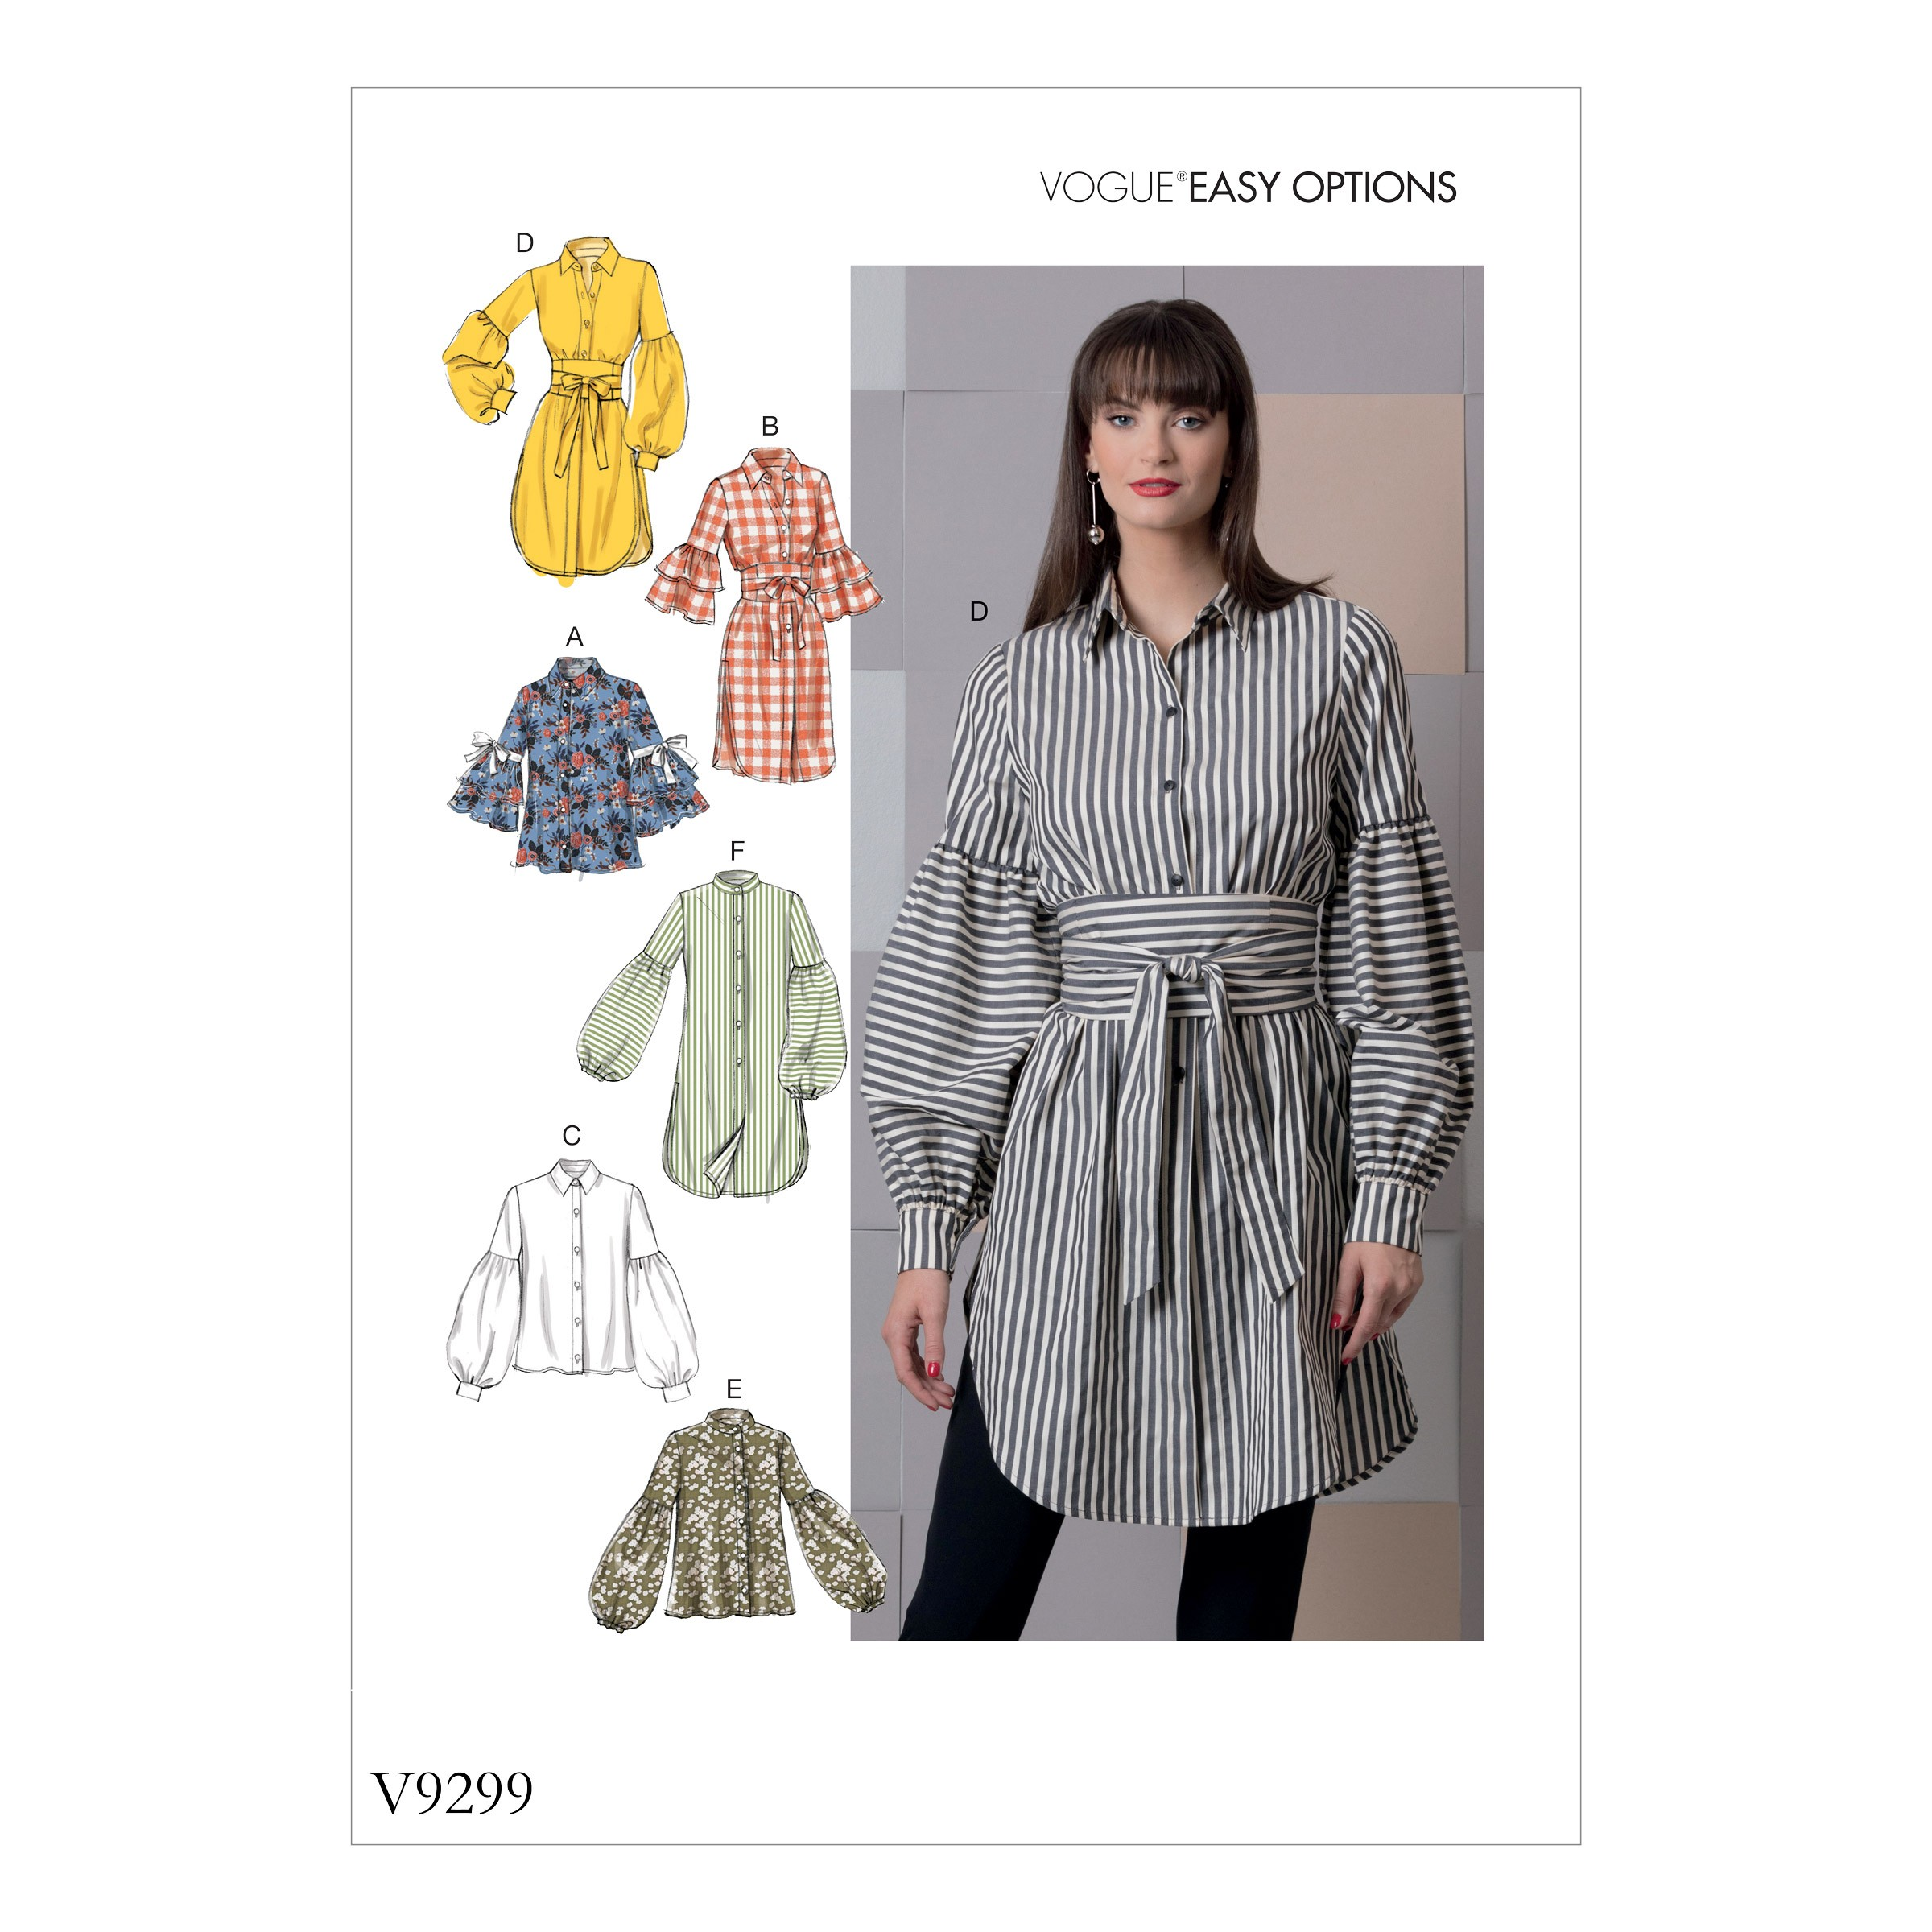 Vogue Sewing Pattern V9299 Women's Top With Belt